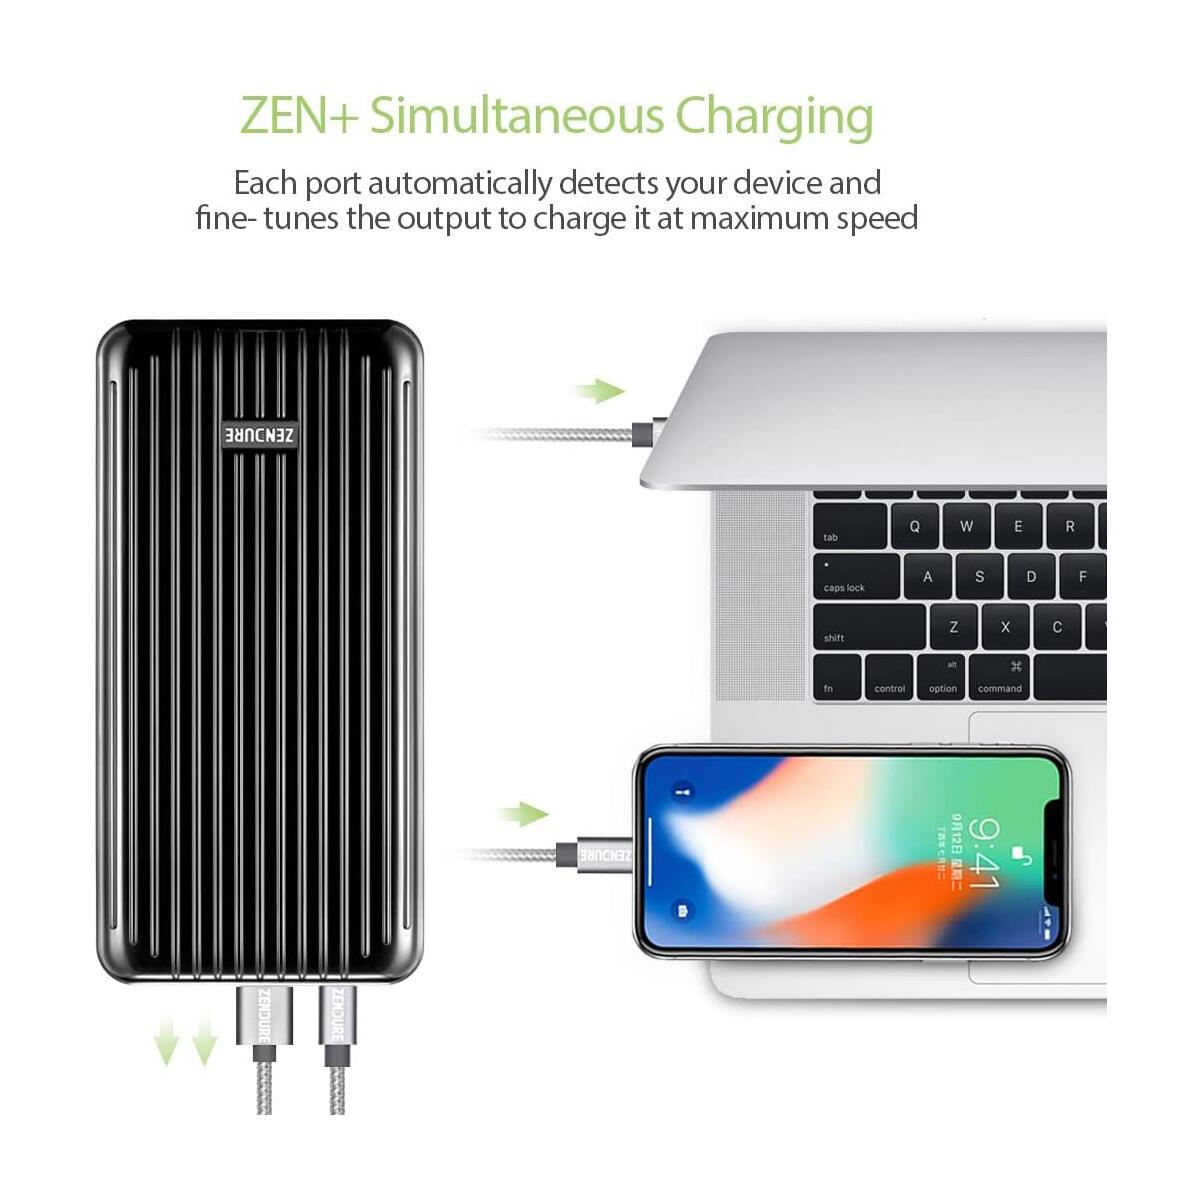 Zendure 45W Power Delivery Portable Charger A6PD 20100mAh Ultra-Durable PD Power Bank with USB-C Input/Output, External Battery for MacBook Pro, iPhone, Black